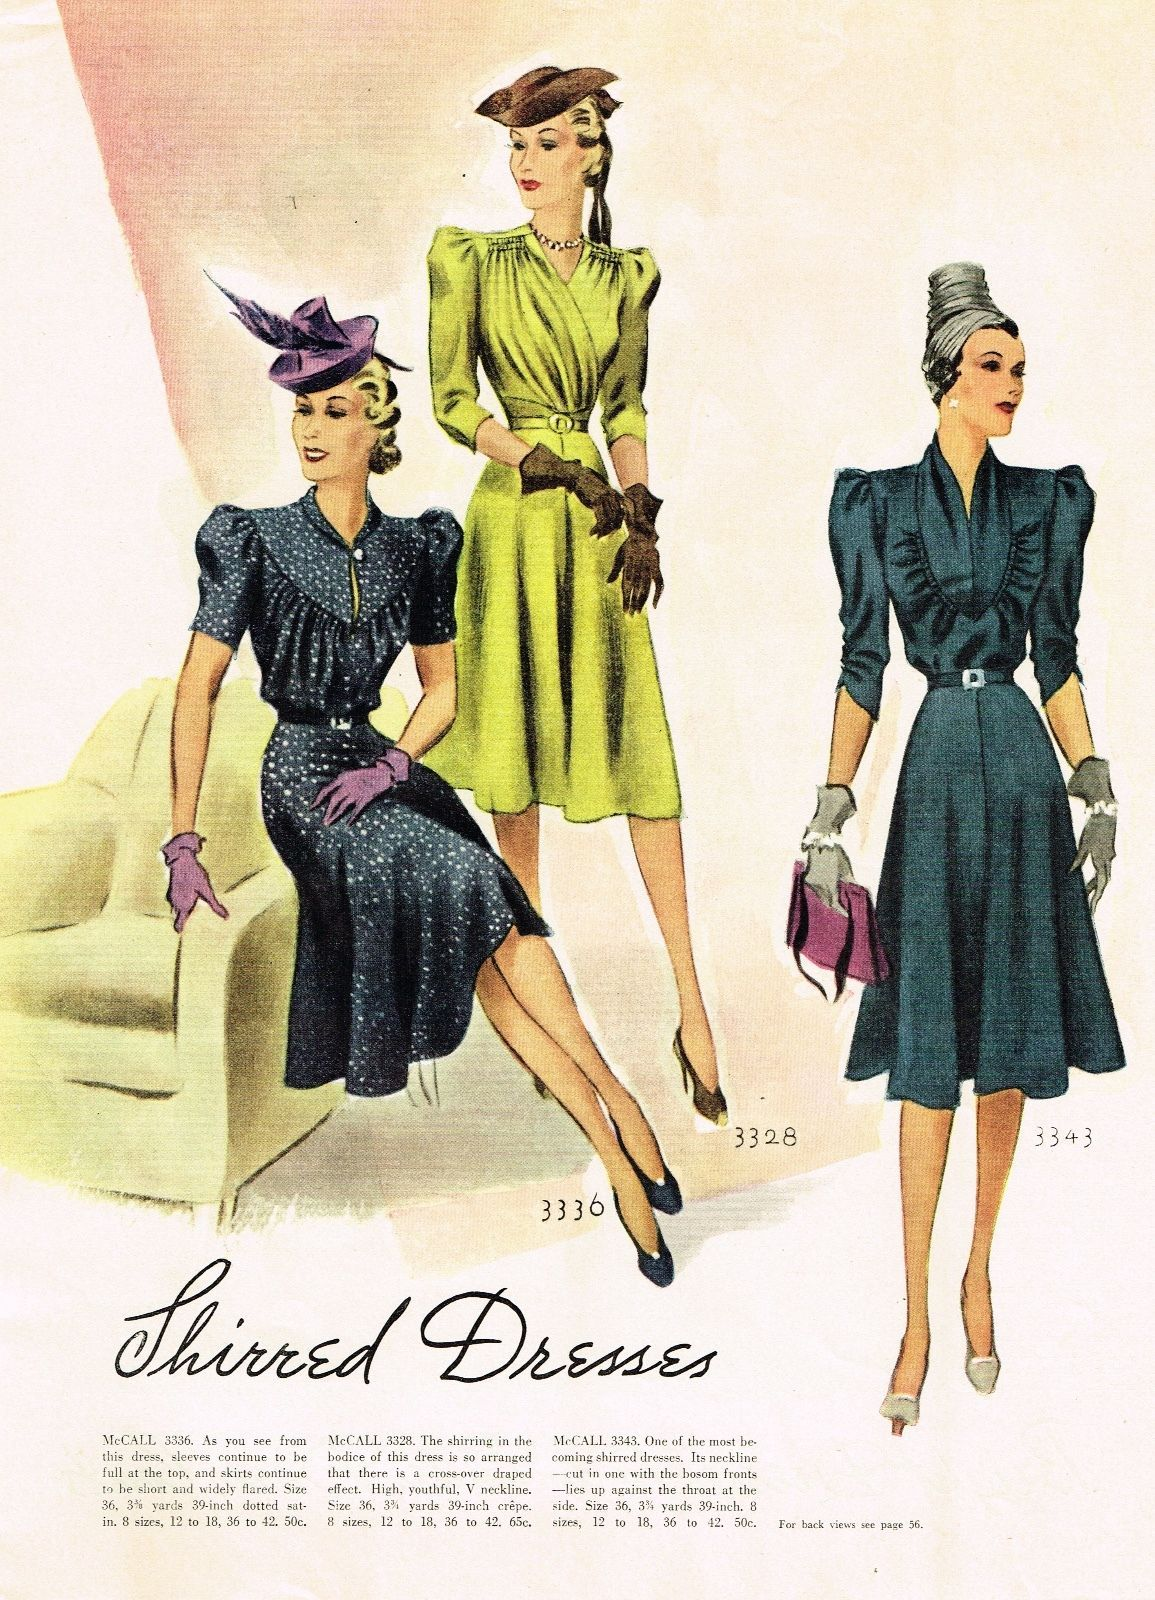 Mccall Fashion Book Autumn 1939 Featuring Mccall 3336 3328 And